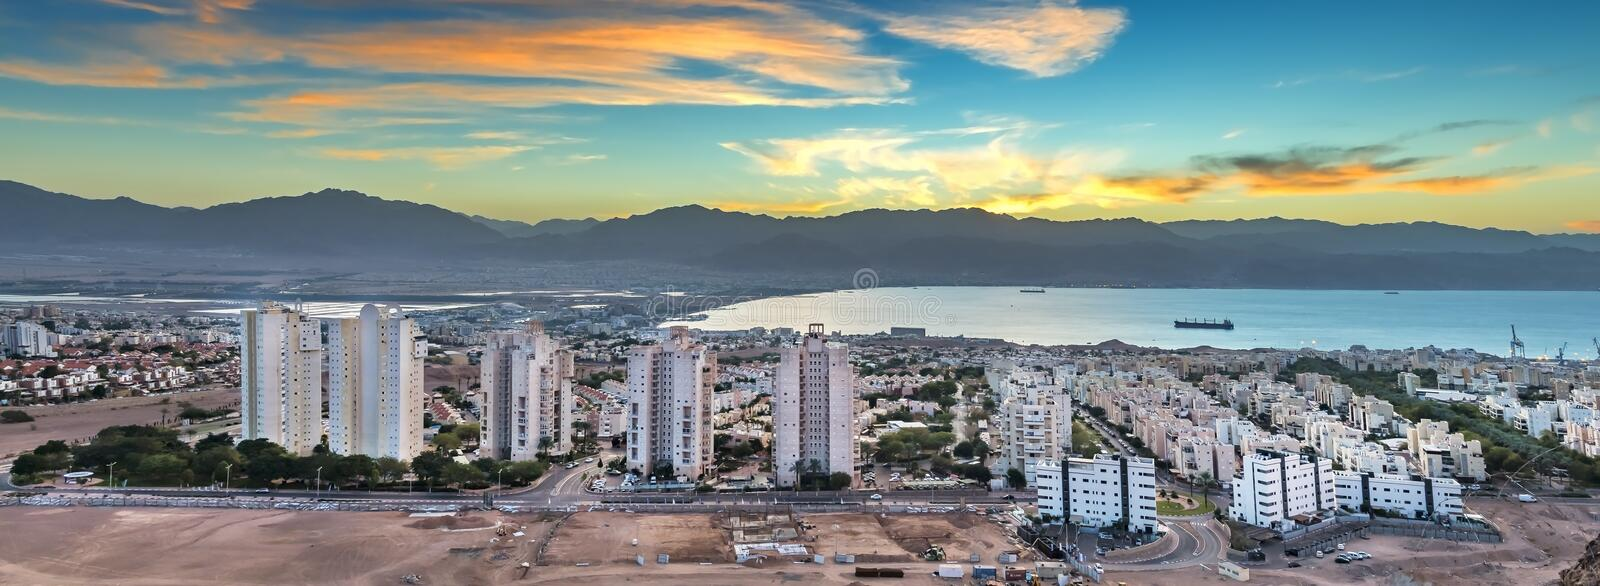 Morning view on Eilat from mountains, Israel royalty free stock photography